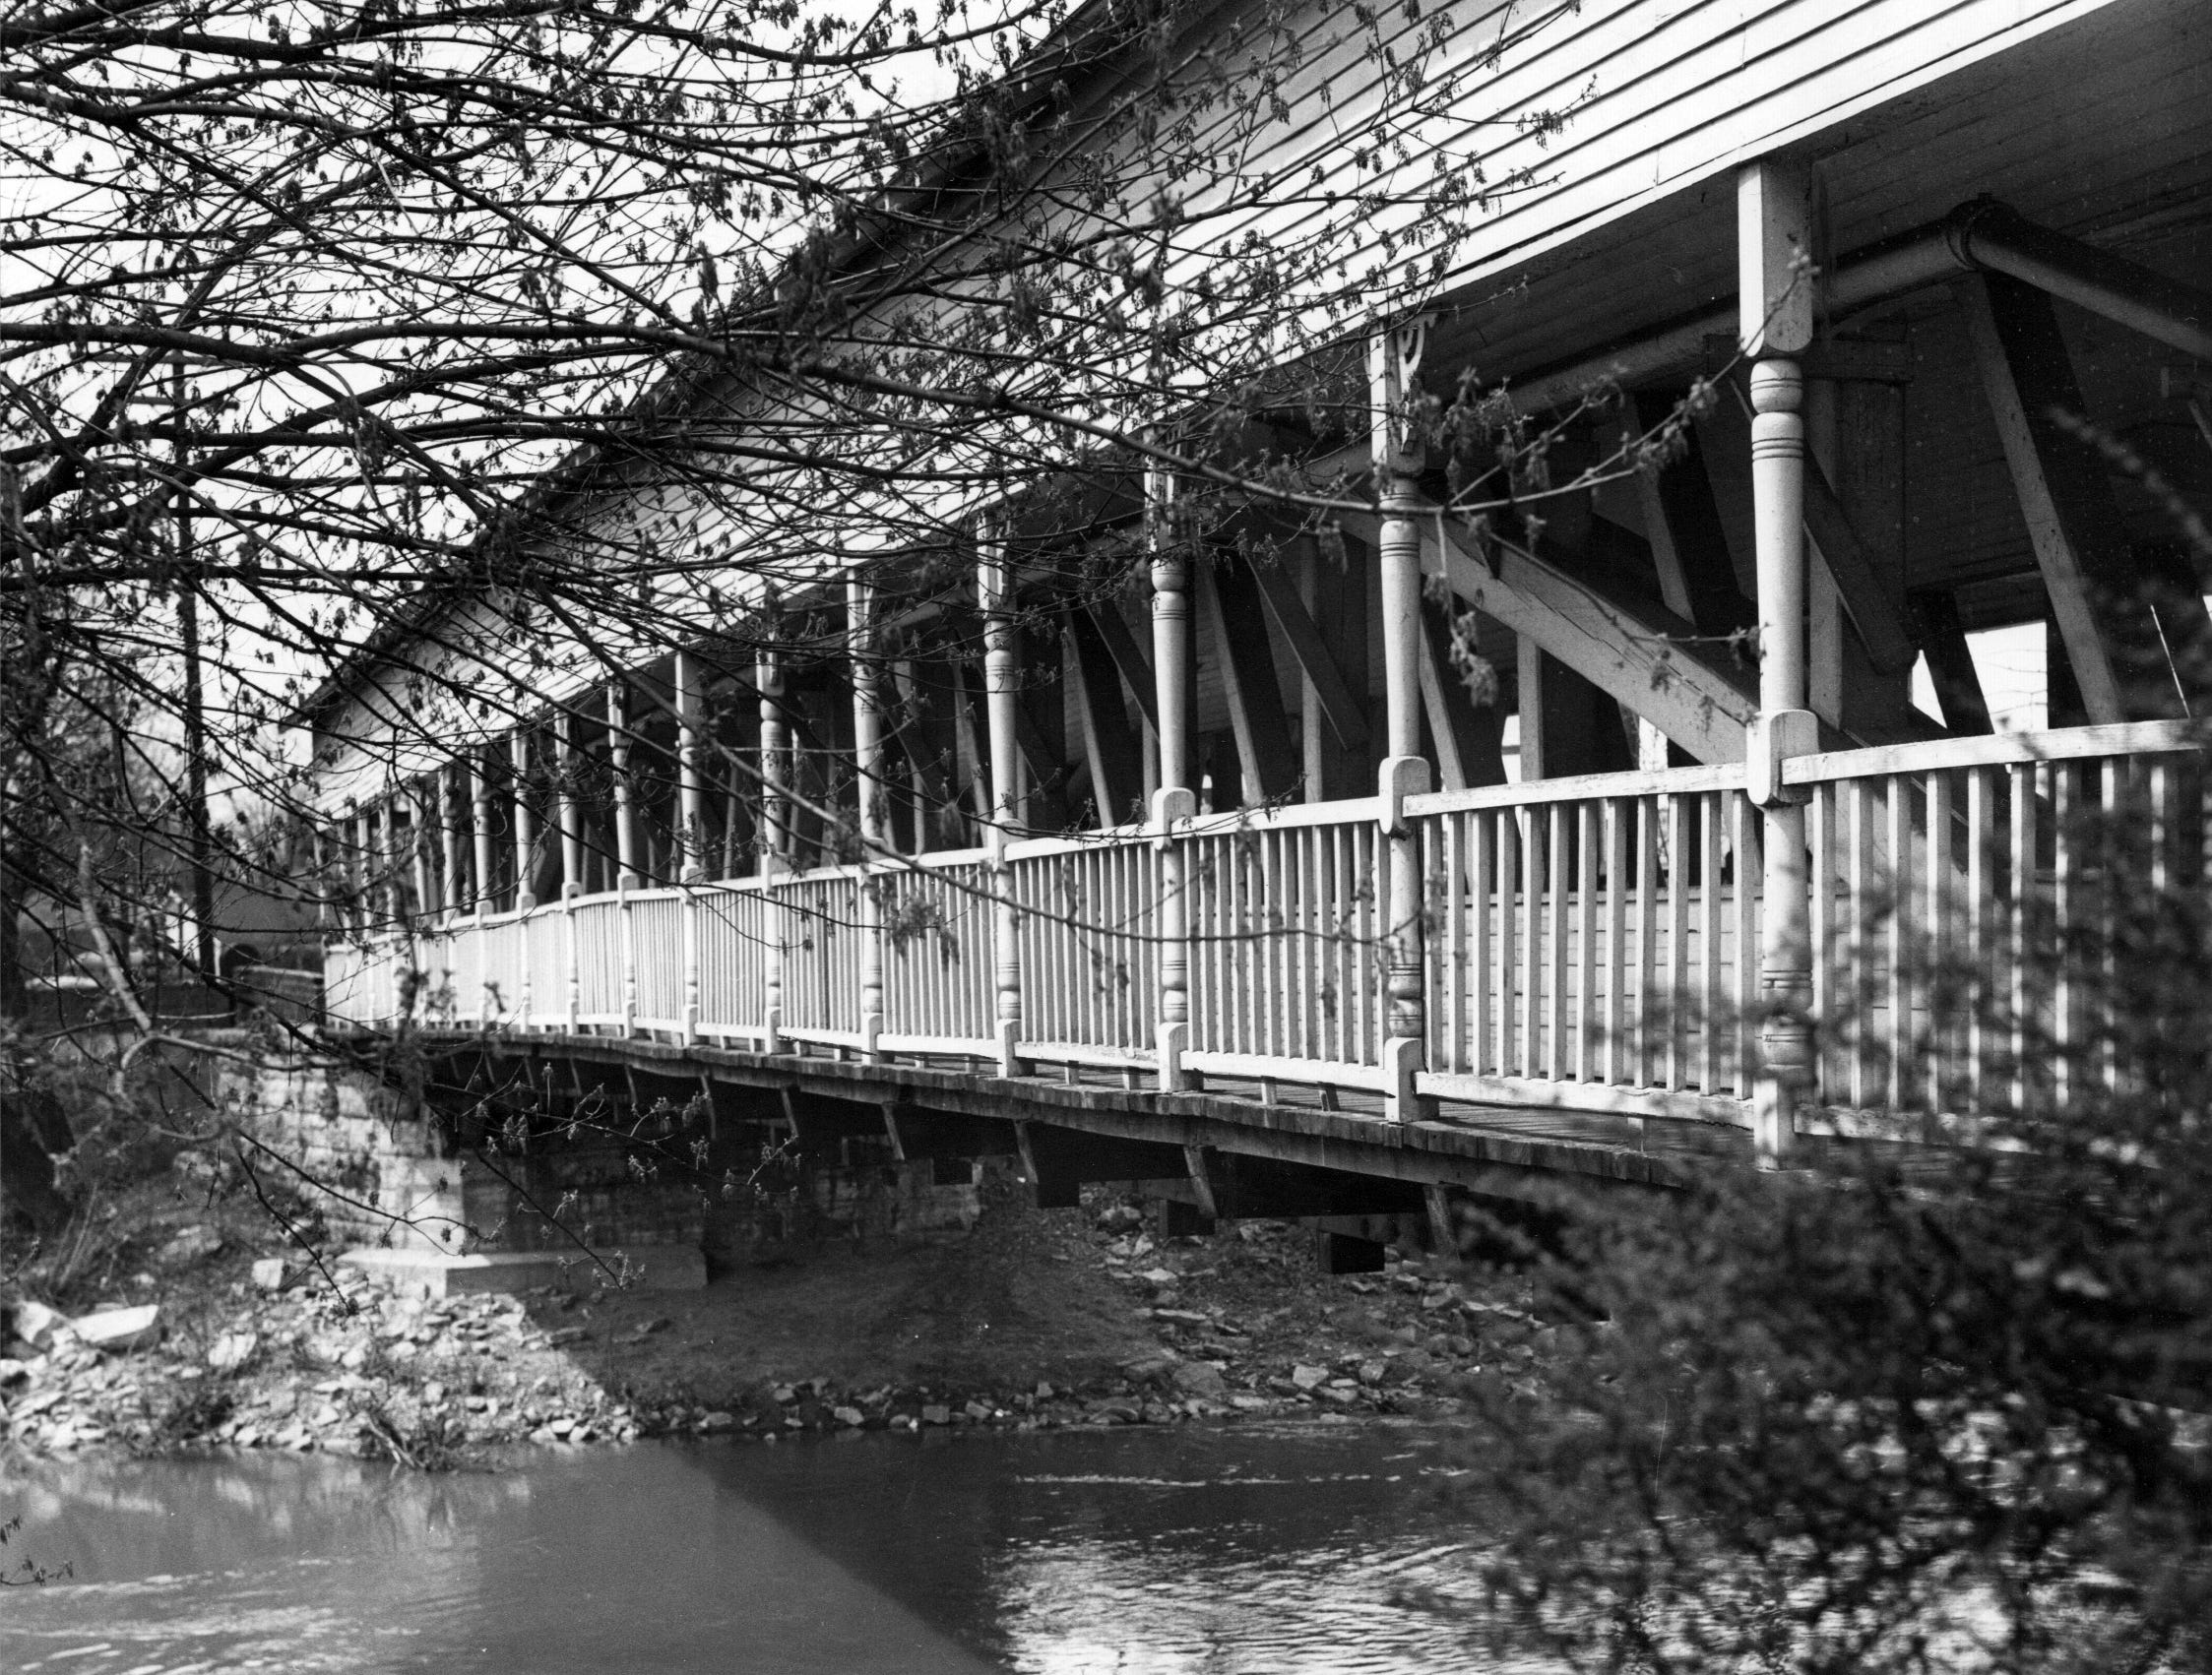 Cedar Ford Covered Bridge that once spanned the Little Blue River north of Shelbyville in 1951. The bridge was removed in 1975 to make way for a new bridge and put into storage until 2015 when it was moved to Monroe County to replace a bridge that burned in 1976 over Bean Blossom Creek.